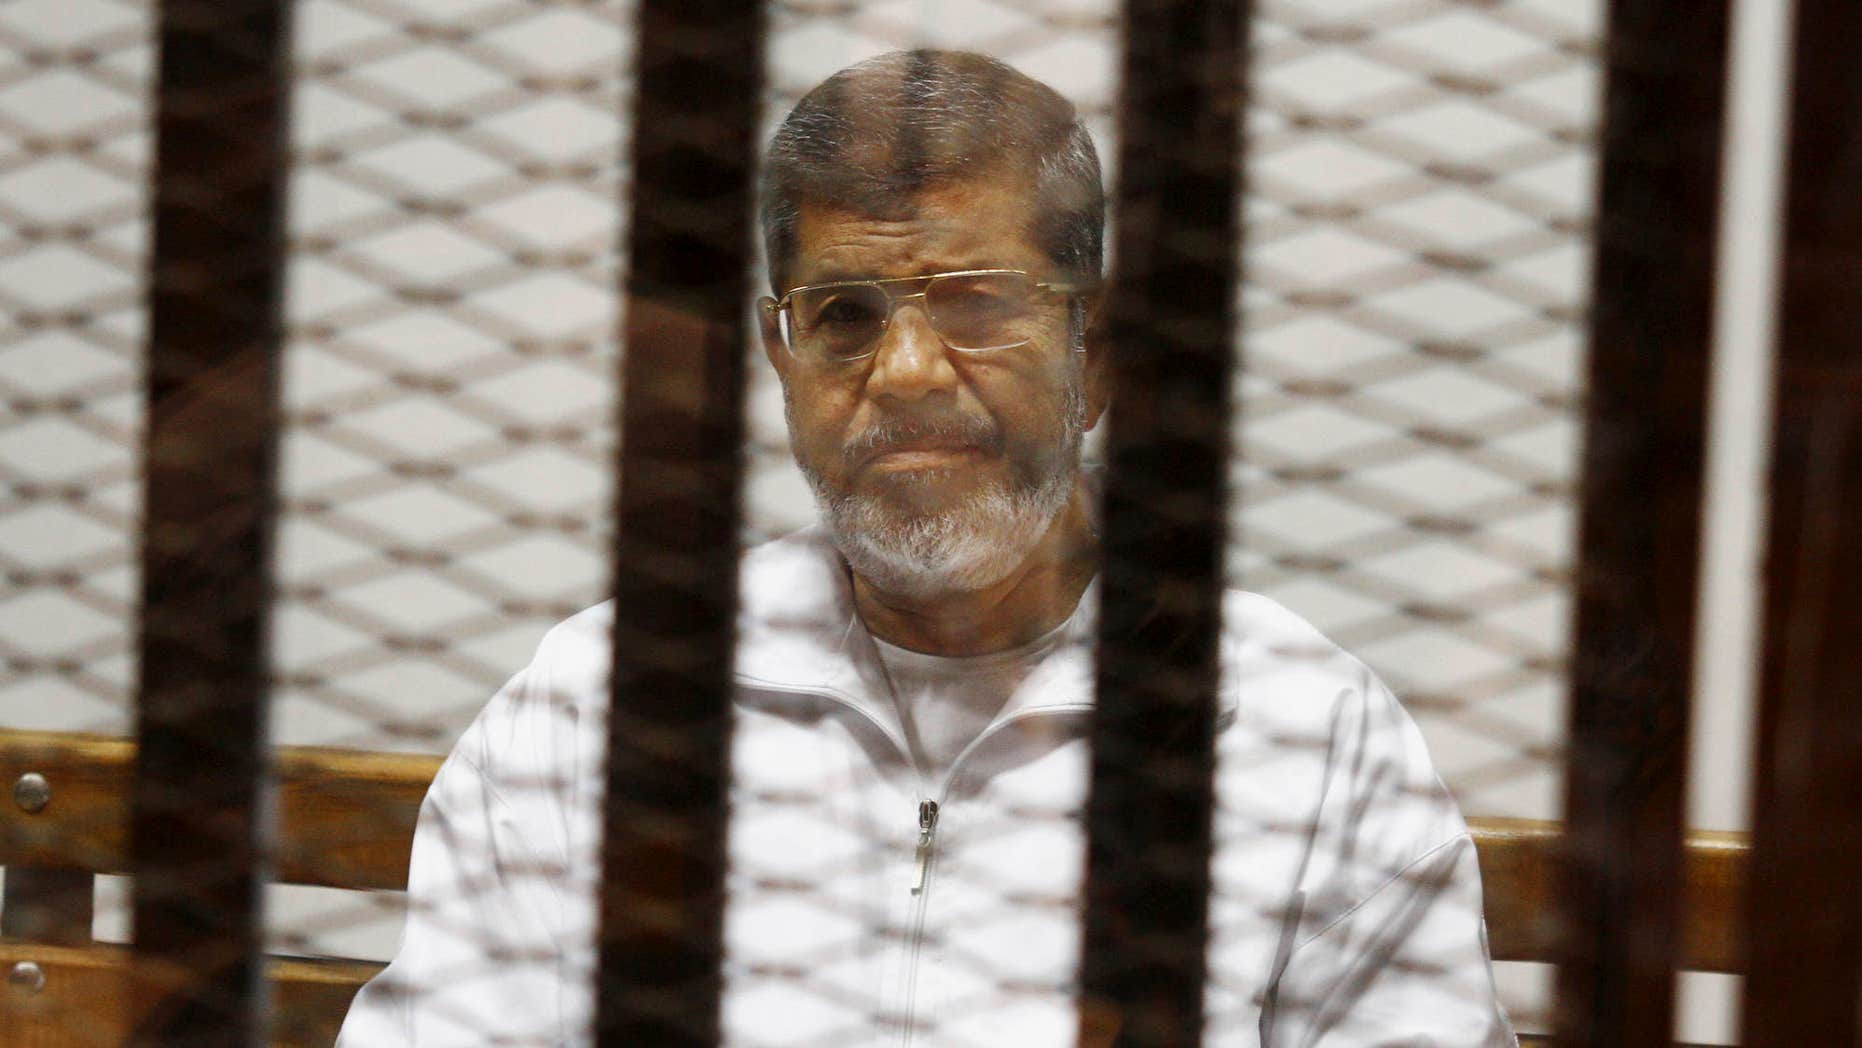 May 8, 2014: Egypt's ousted Islamist President Mohammed Morsi sits in a defendant cage in the Police Academy courthouse in Cairo, Egypt.